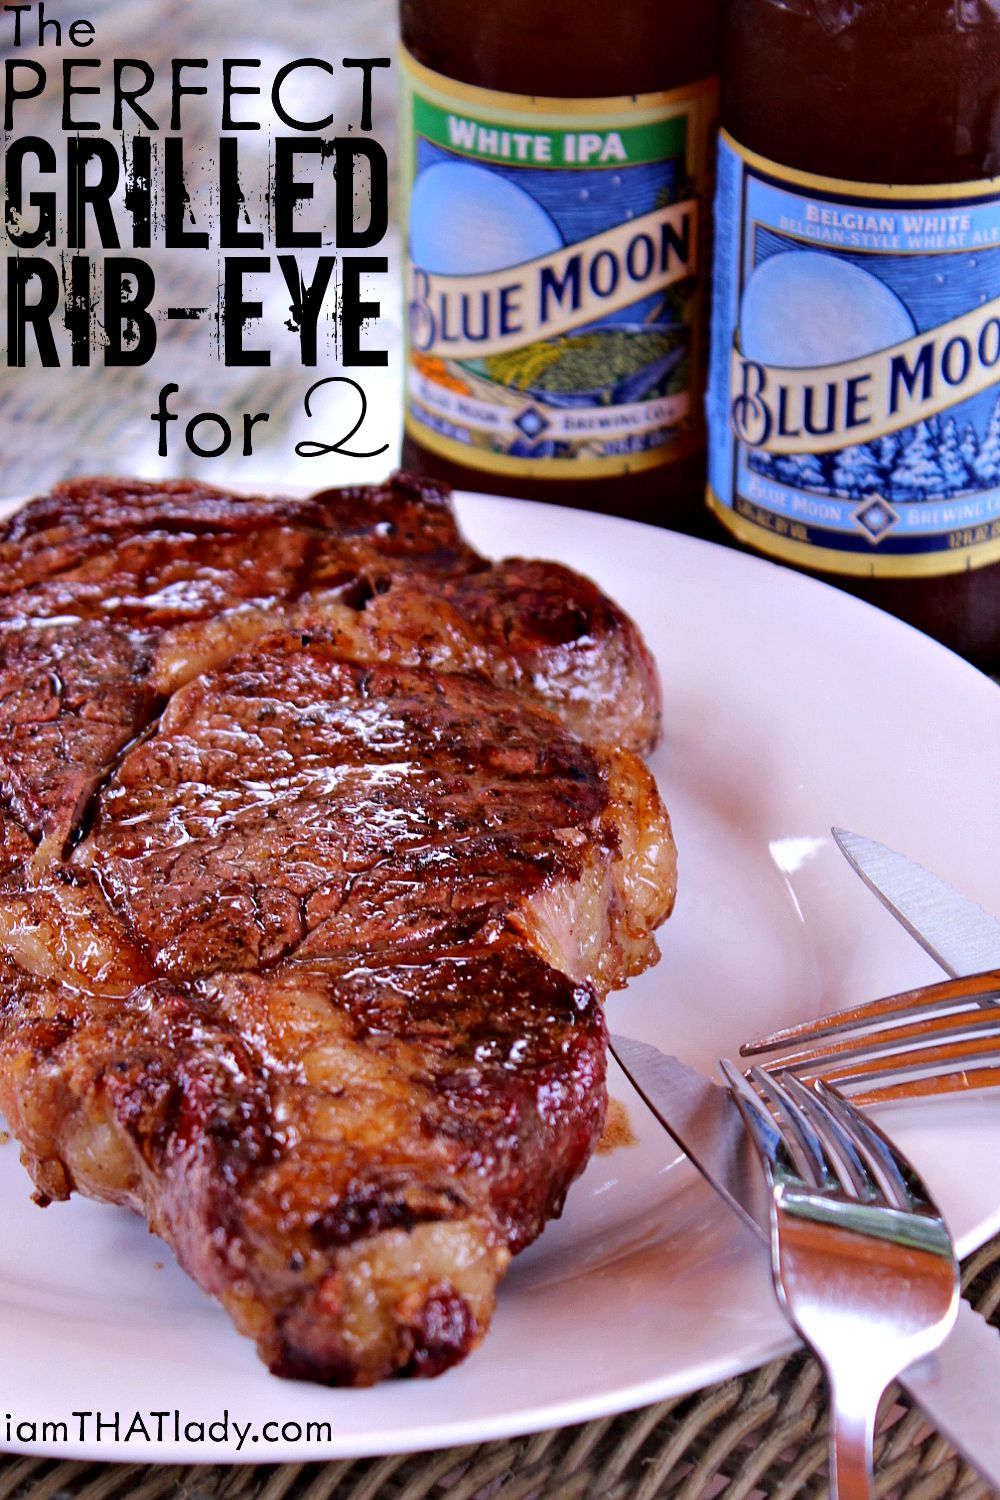 The Perfect Grilled Ribeye For 2